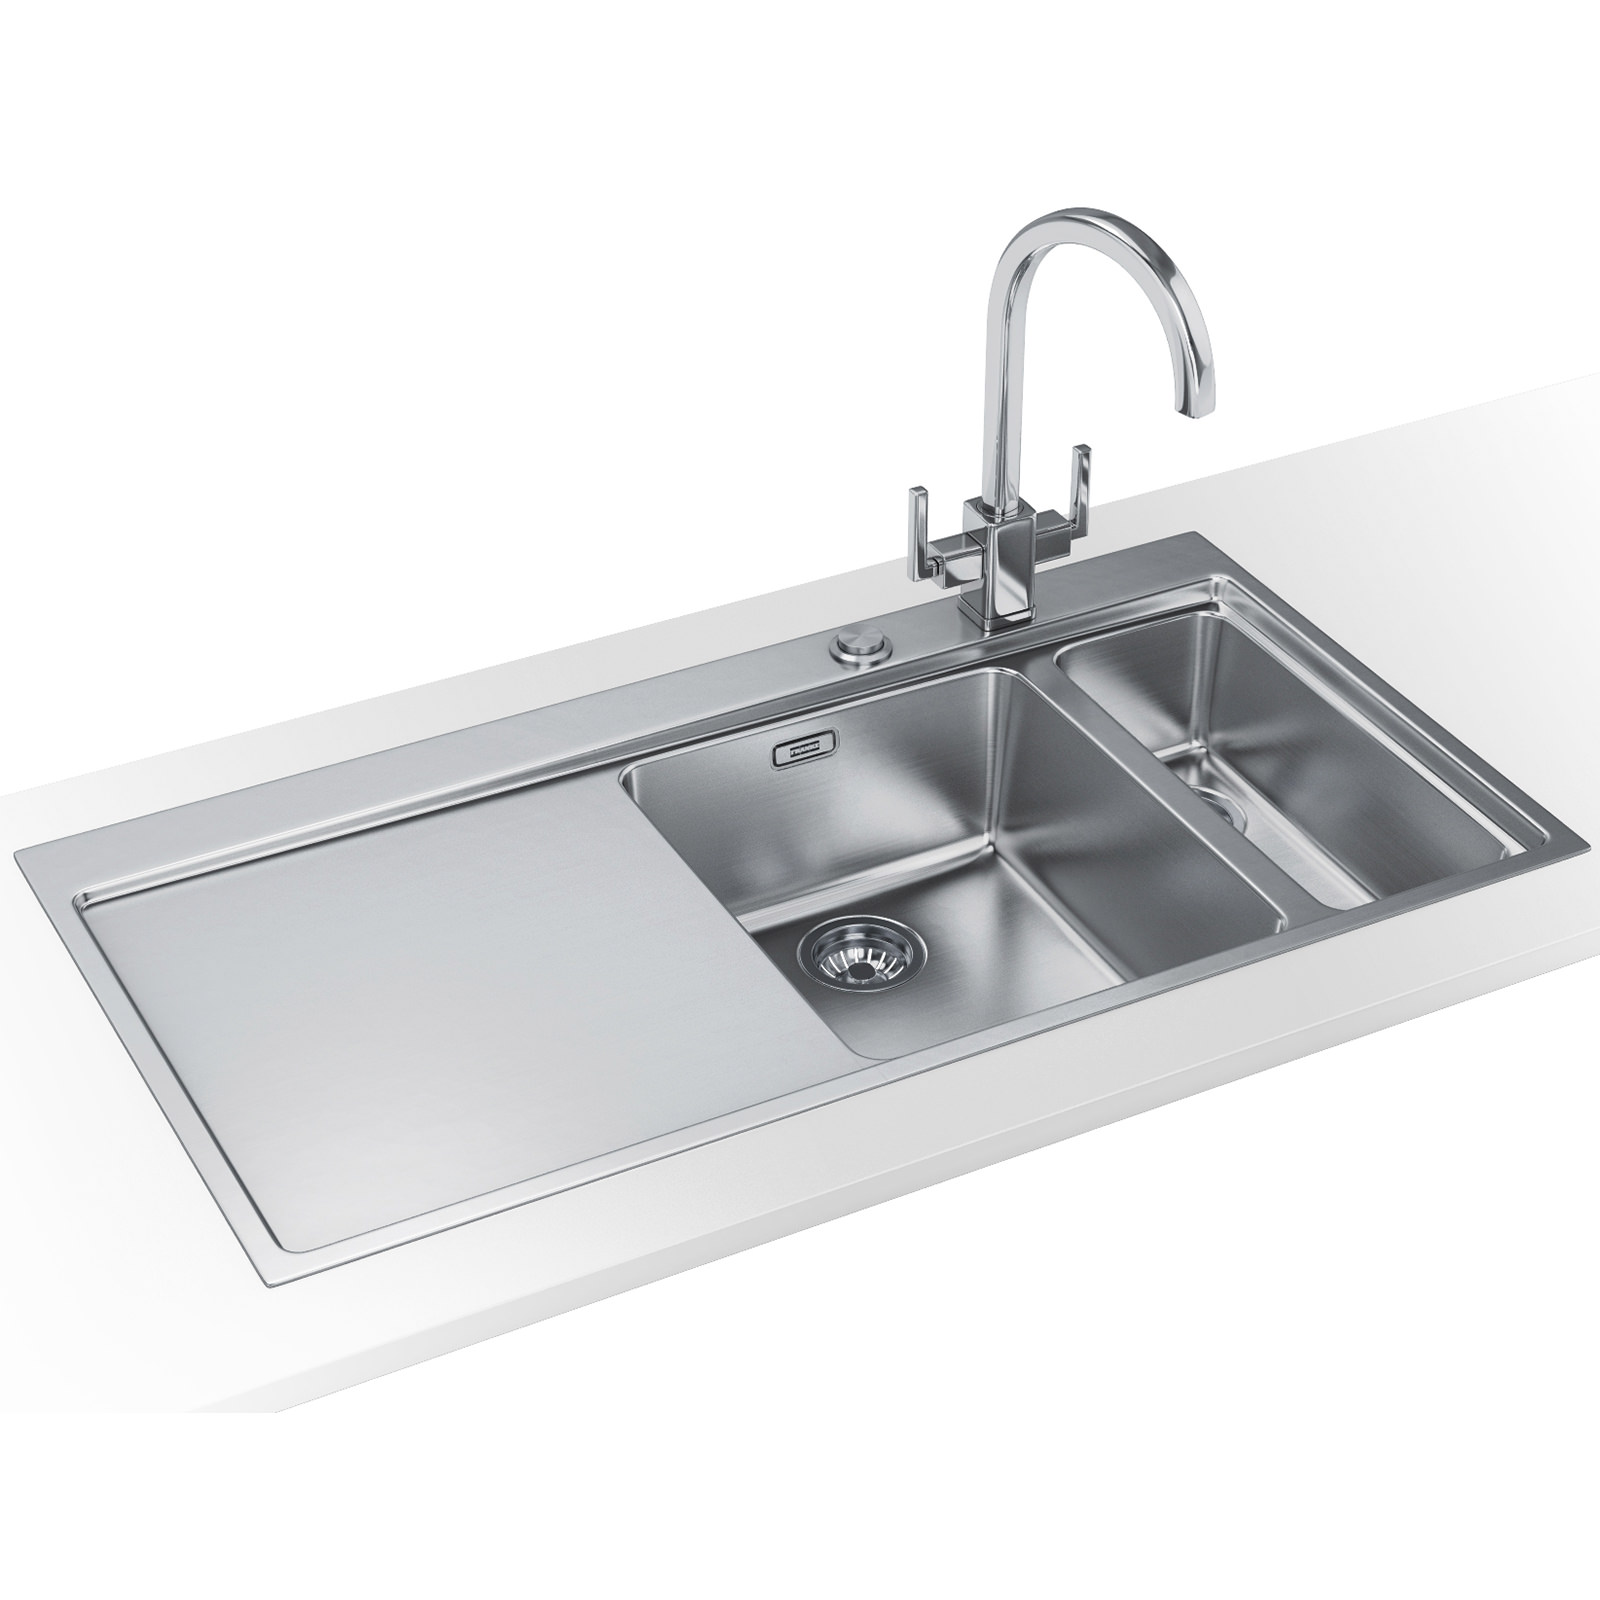 Franke Sinks And Taps : Franke Mythos Slim-Top DP MMX 261 Stainless Steel Sink And Tap 127 ...